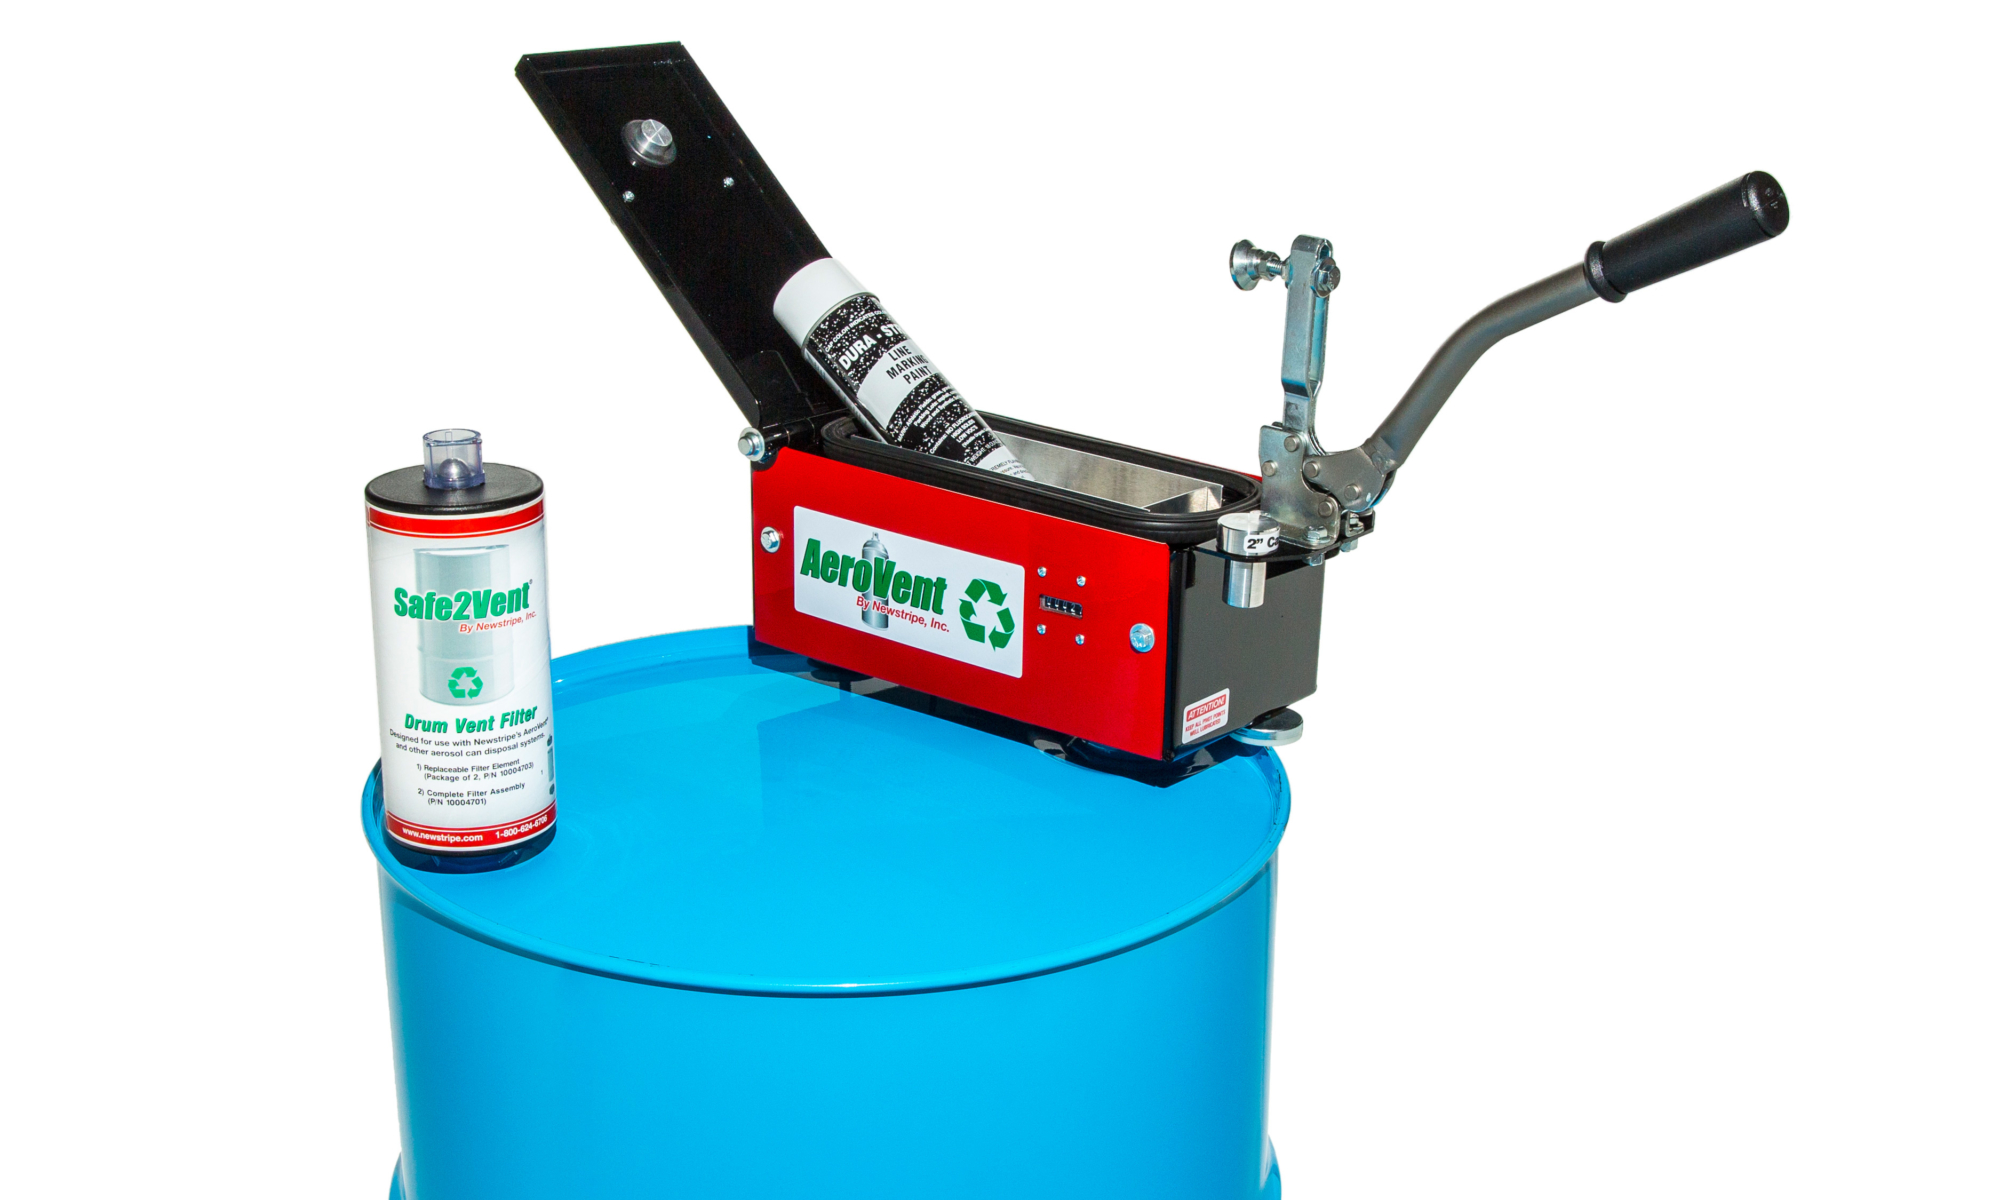 <strong>The AeroVent® 1X Single Aerosol Can Recycling Disposal System</strong> is a single can system which allows you to quickly puncture and drain aerosol spray cans to reduce the cost of hazardous waste. The cycle counter makes the process convenient by tracking the number of cans used so you don't have to guess when to change the filters. <strong>The AeroVent® 1X operation is as simple as One, Two, Three:</strong> <ol> <li>Just place an aerosol can in the AeroVent®1X and close the lid with the convenient handle/clamp. This automatically seals the chamber and punctures the aerosol can at the same time.</li> <li>Wait until the Safe2Vent<b>®</b> filter's Viz-a-Ball stops bouncing (usually 5-30 seconds). This indicates the system has been depressurized and is safe to open</li> <li>Open the lid and remove the cans. It is that simple! Now the aerosol can may be disposed of or sold as recyclable metal.</li> </ol> <strong>Cycle Counter–</strong>The cycle counter makes the process convenient by eliminating the need for manual counting and guessing when to change filters. The all new Cycle Counter automatically keeps track of the number of cans processed so you can easily identify when to change filters and schedule replacements. <strong></strong><strong>Versatile–</strong>Designed for the smaller waste generator, the<strong>AeroVent<em>®</em>1X</strong>has a unique tray design that accepts a variety of aerosol can sizes up to 3 inch diameter and 10 inch length with just the one tray. Quick change aluminum plugs in the lid are changed for different aerosolcan sizes making the<strong>AeroVent<em>®</em>1X</strong>a one-size-fits-all aerosol can disposal system. <strong>Exclusive Viz-a-Ball™ Indicator Check Valve–</strong>This revolutionary design serves two essential functions. First, it keeps the operator safe by indicating when the system is completely depressurized and can be opened. Second, the ball check valve complies with OSHA, EPA and California regulations requirin